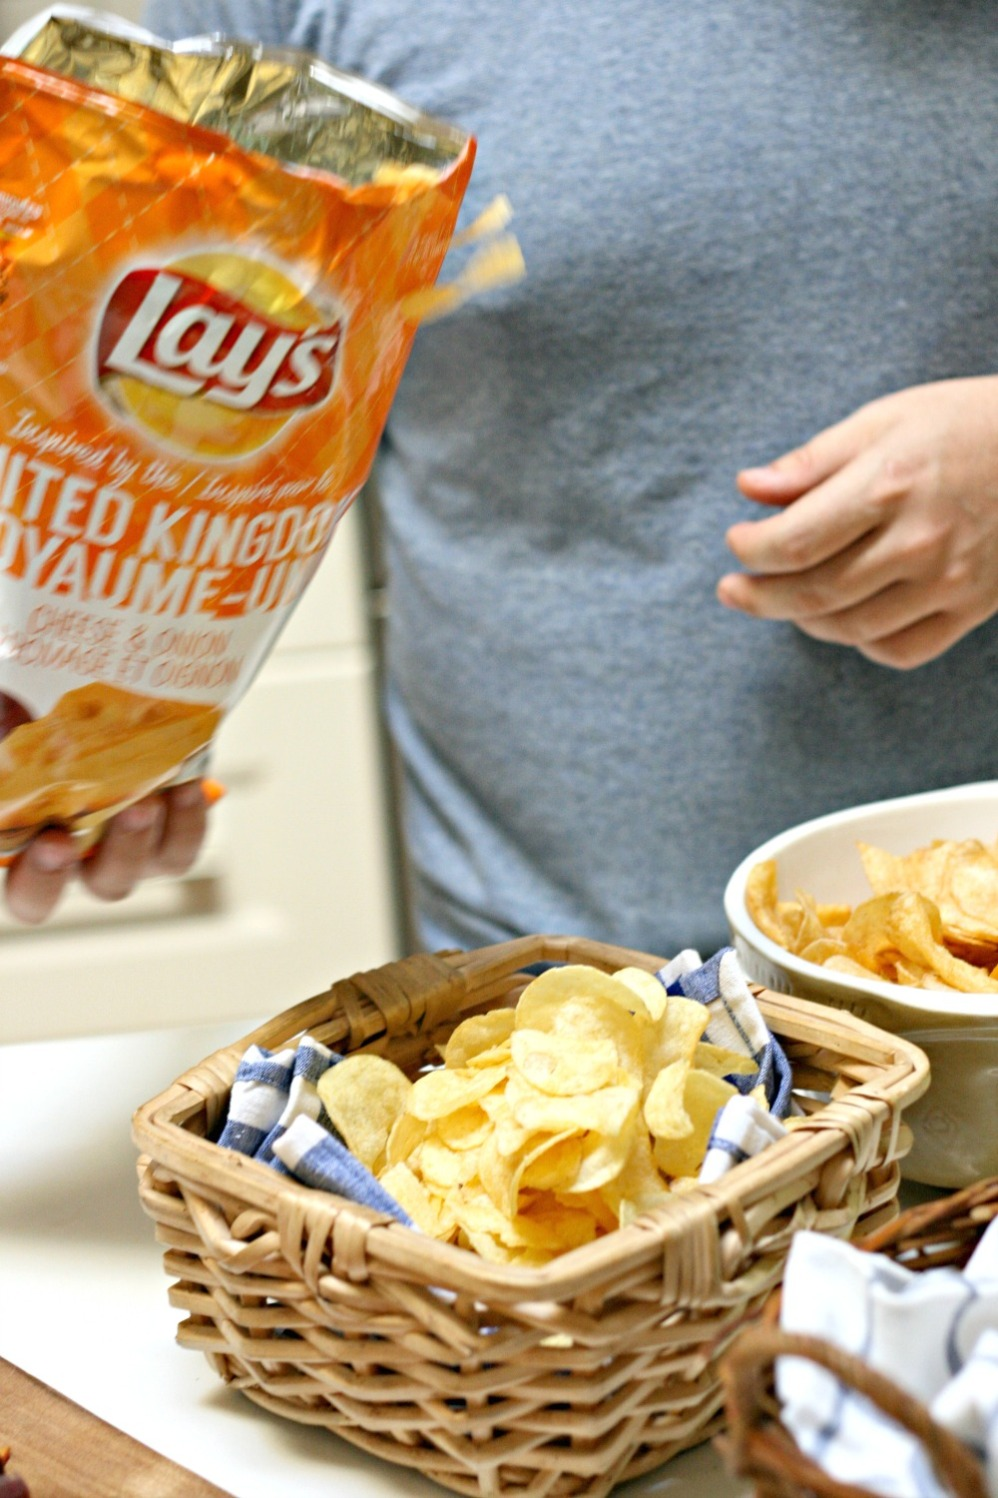 Lay's cheese and onion with bag